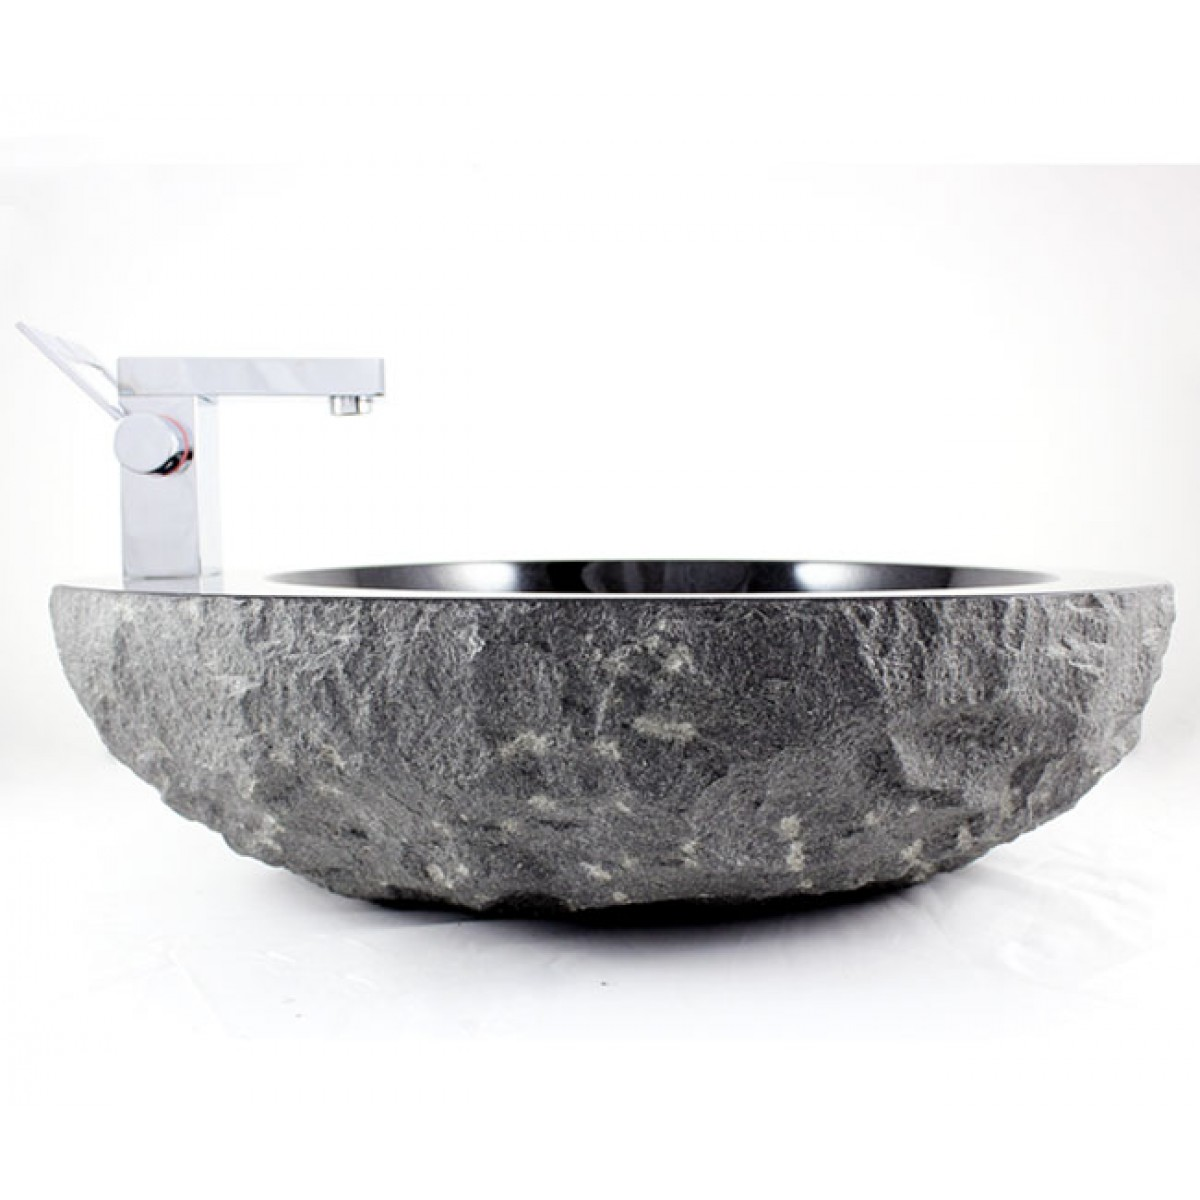 Natural Stone Absolute Black Granite Finish Bathroom Lavatory Vessel Sink    22 1/8 X 18 3/16 X 5 1/4 Inch